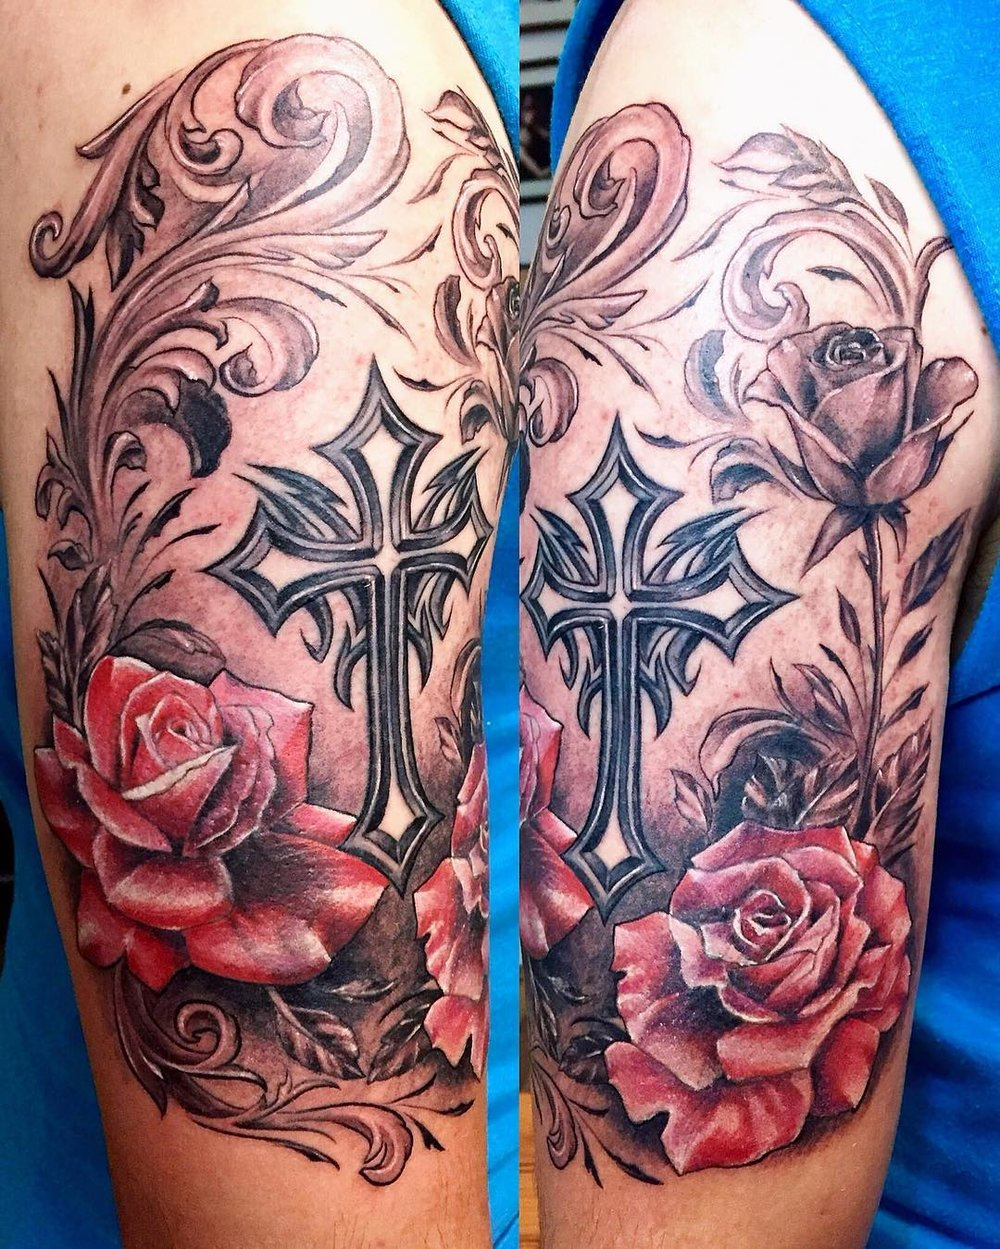 Redone_the_cross_I_did_seven_yrs_ago___and_added_some_roses_and_background_to_cover_up_rest_of_the_tribal_designs__.jpg